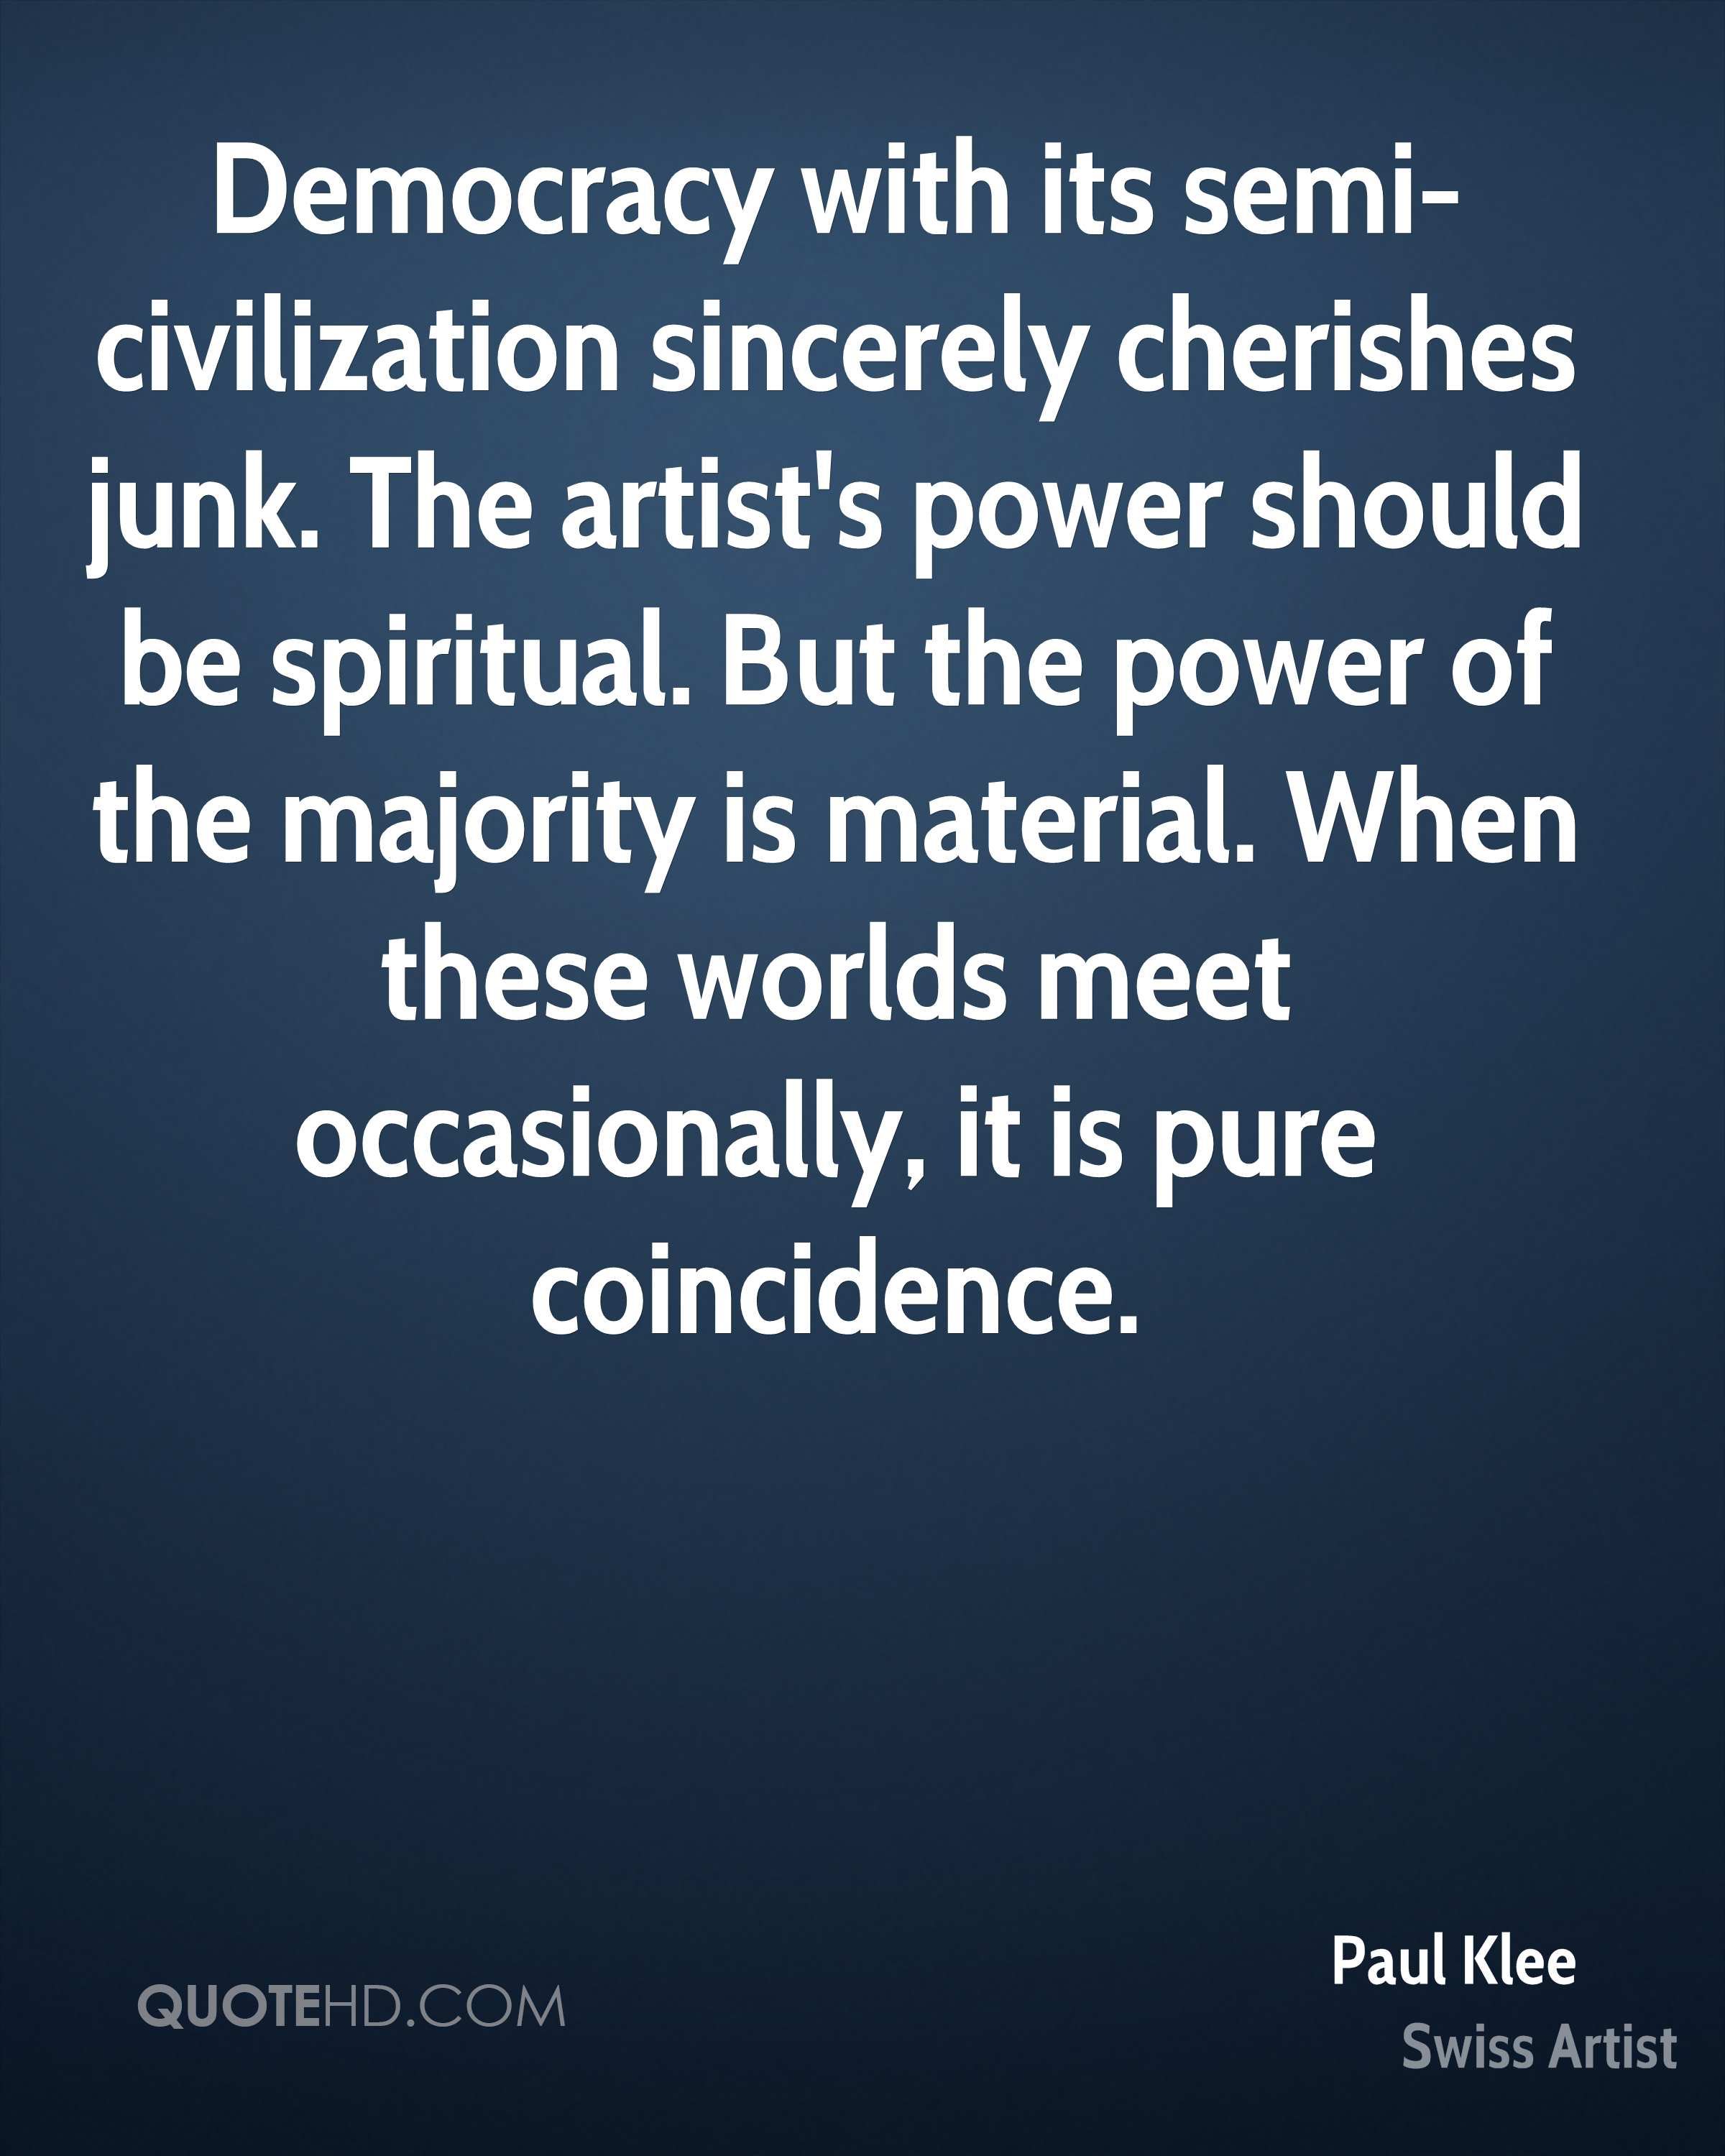 Democracy with its semi-civilization sincerely cherishes junk. The artist's power should be spiritual. But the power of the majority is material. When these worlds meet occasionally, it is pure coincidence.